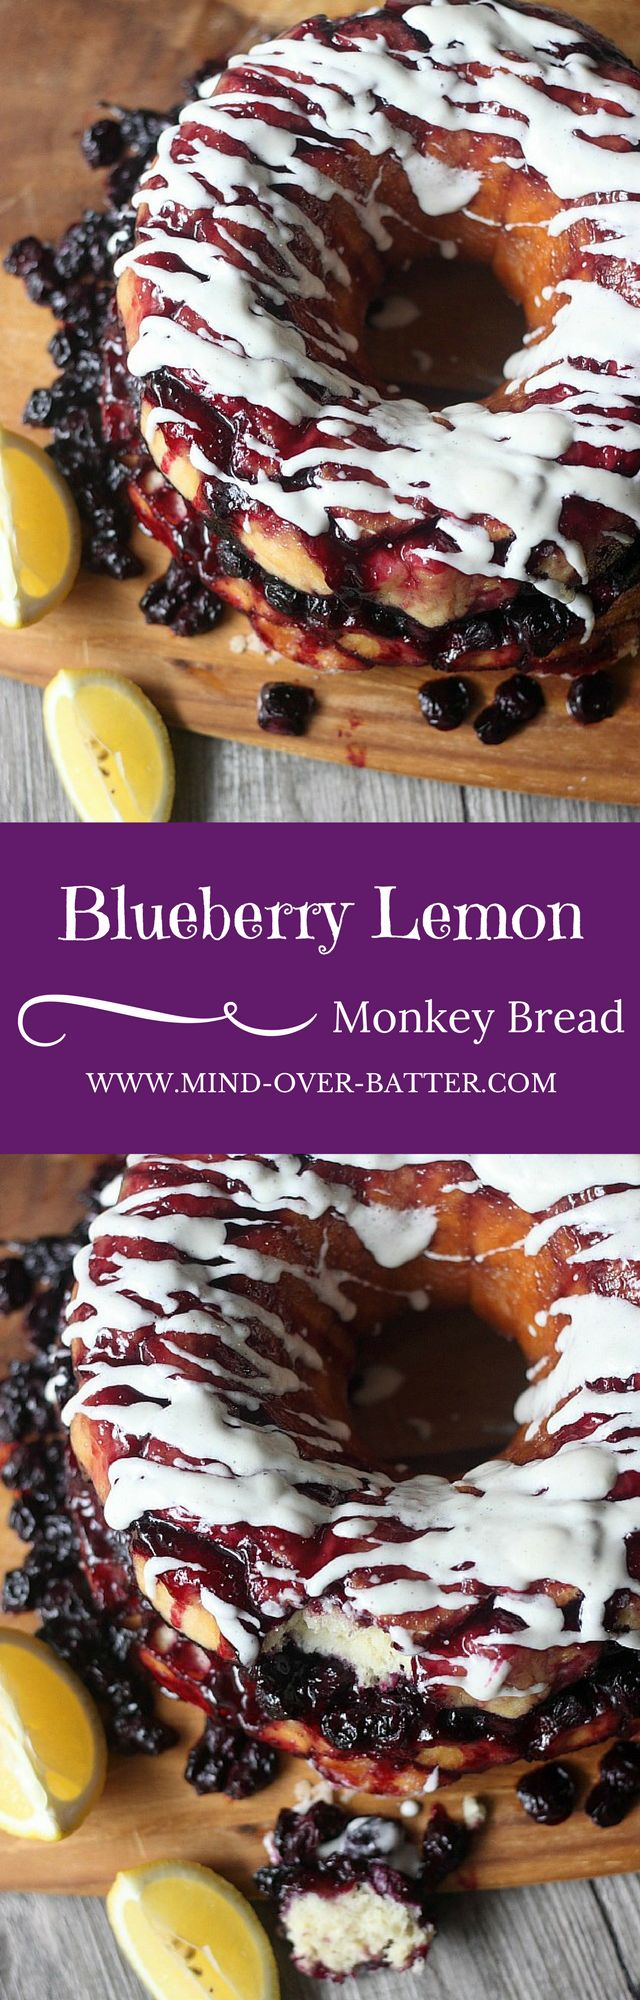 Blueberry Lemon Monkey Bread -- www.mind-over-batter.com